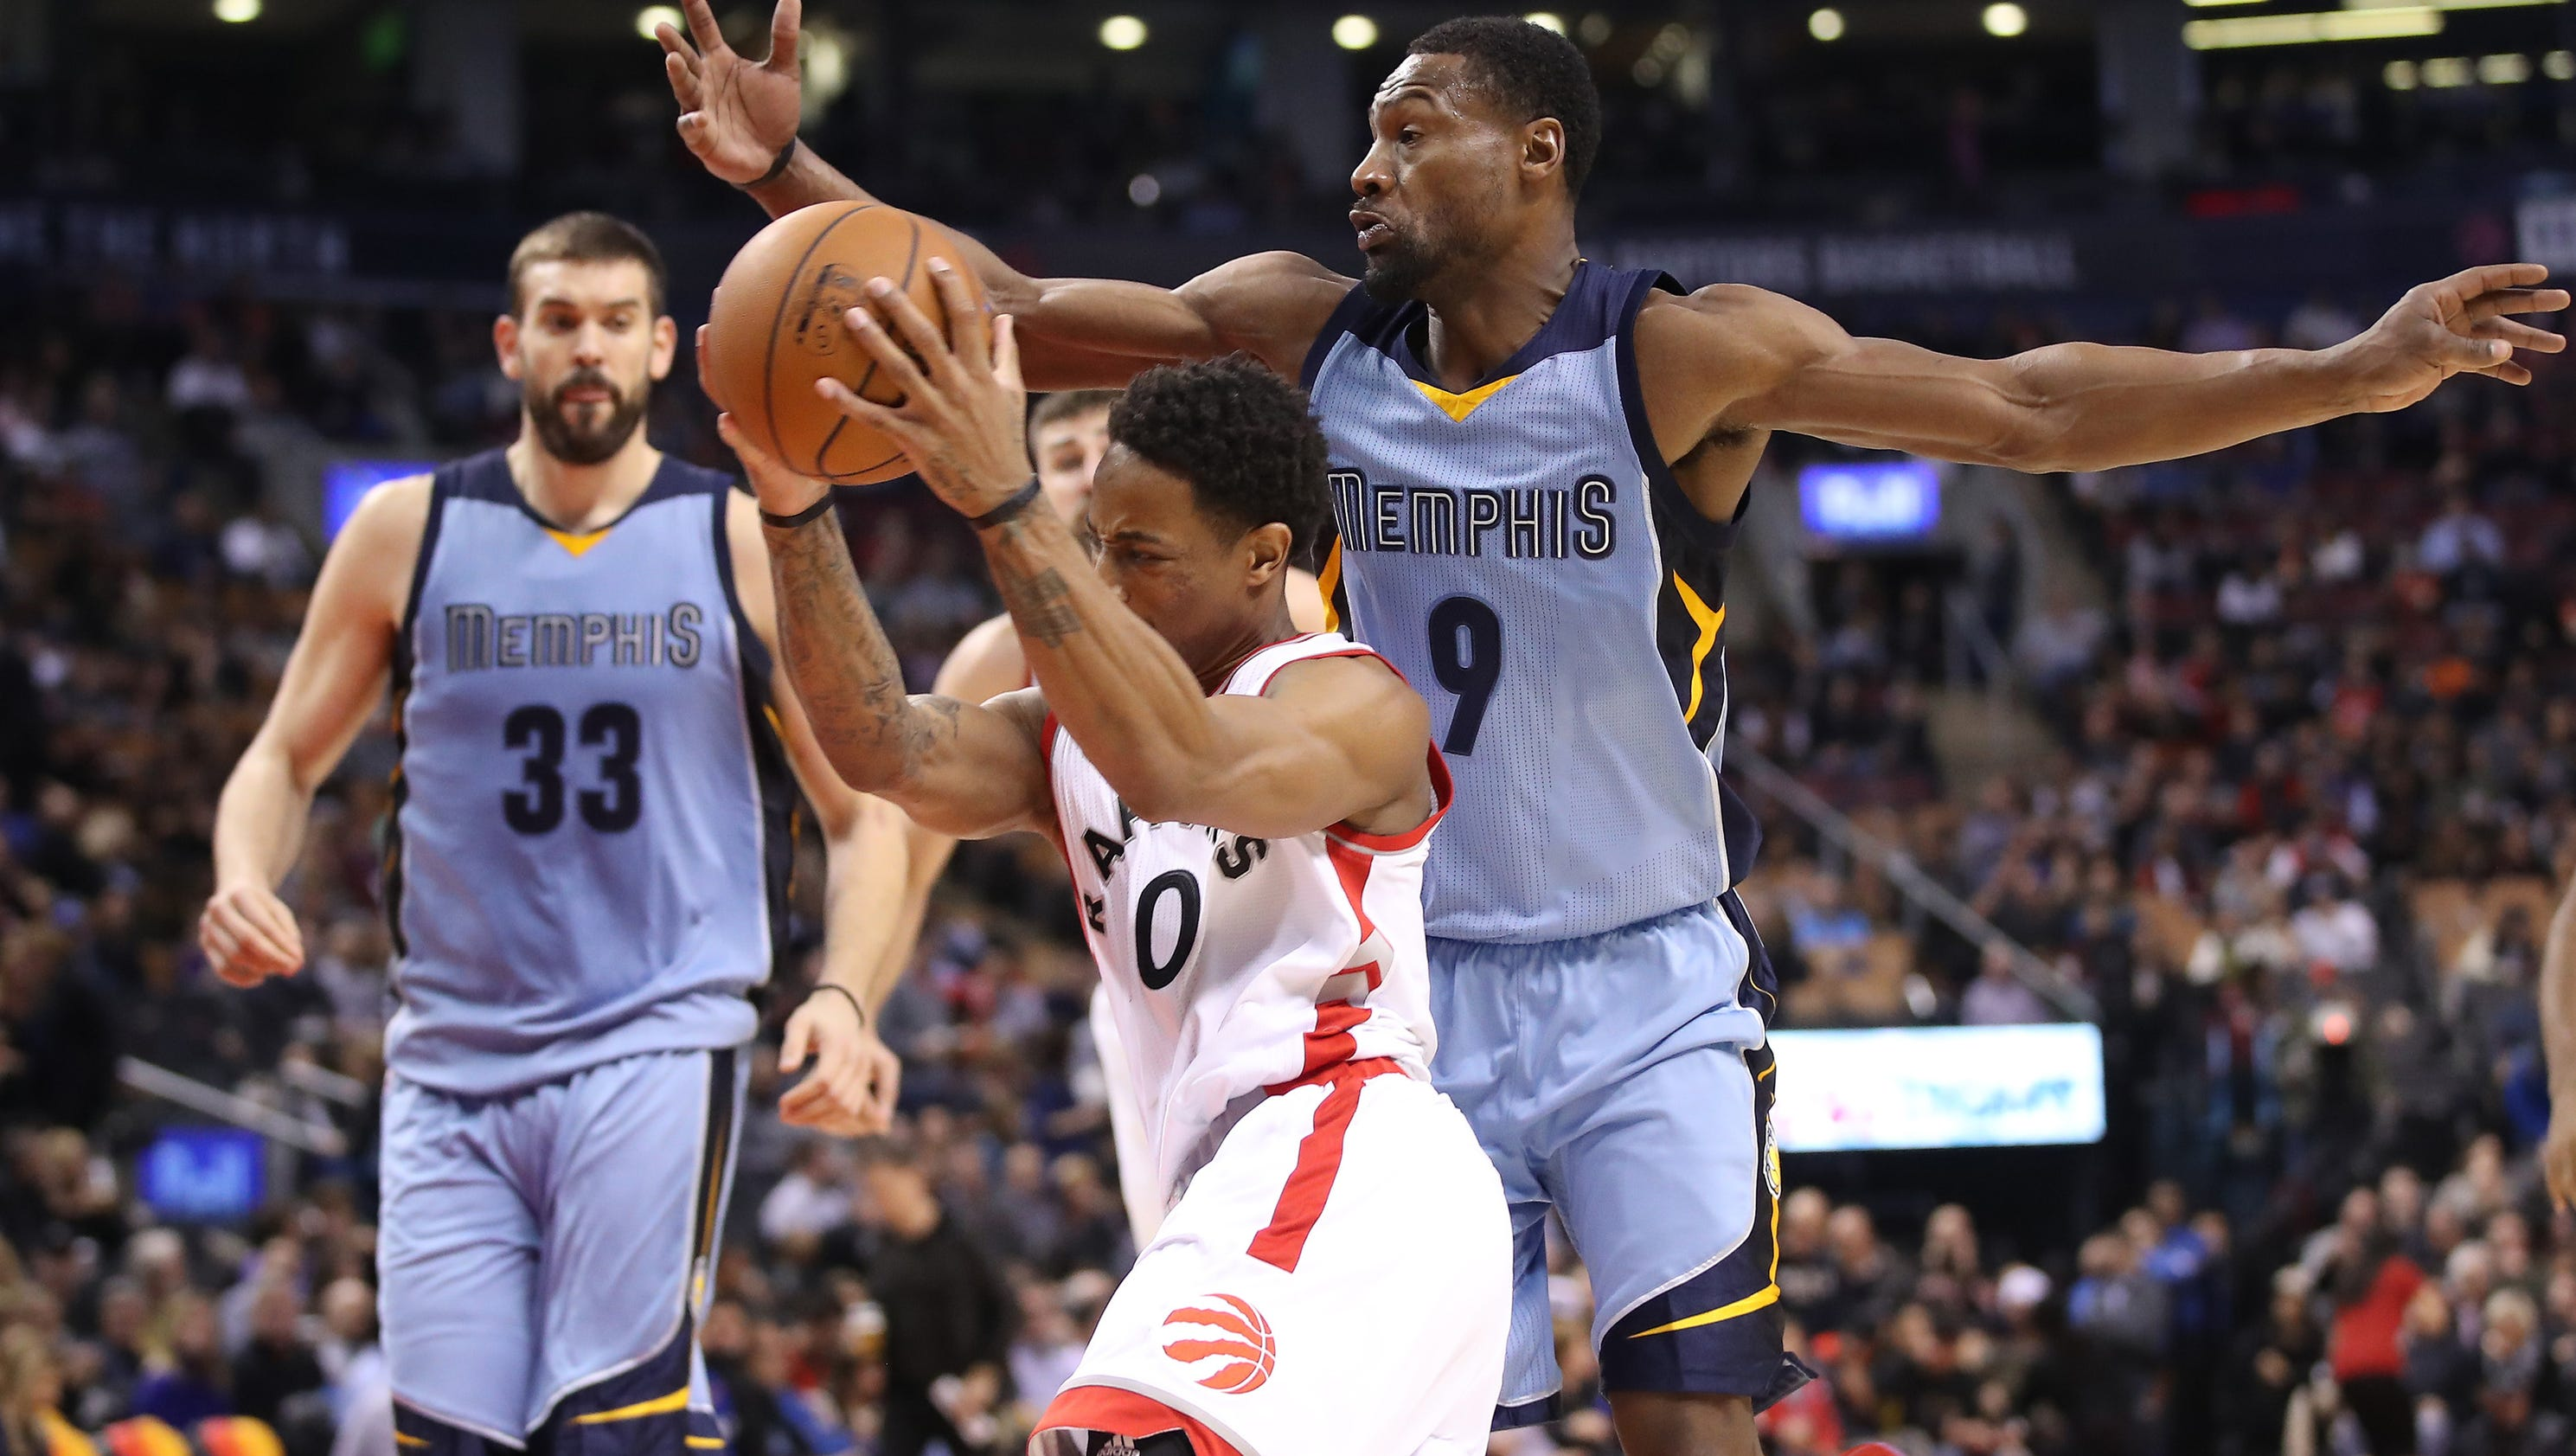 636164769643085984-usp-nba--memphis-grizzlies-at-toronto-raptors